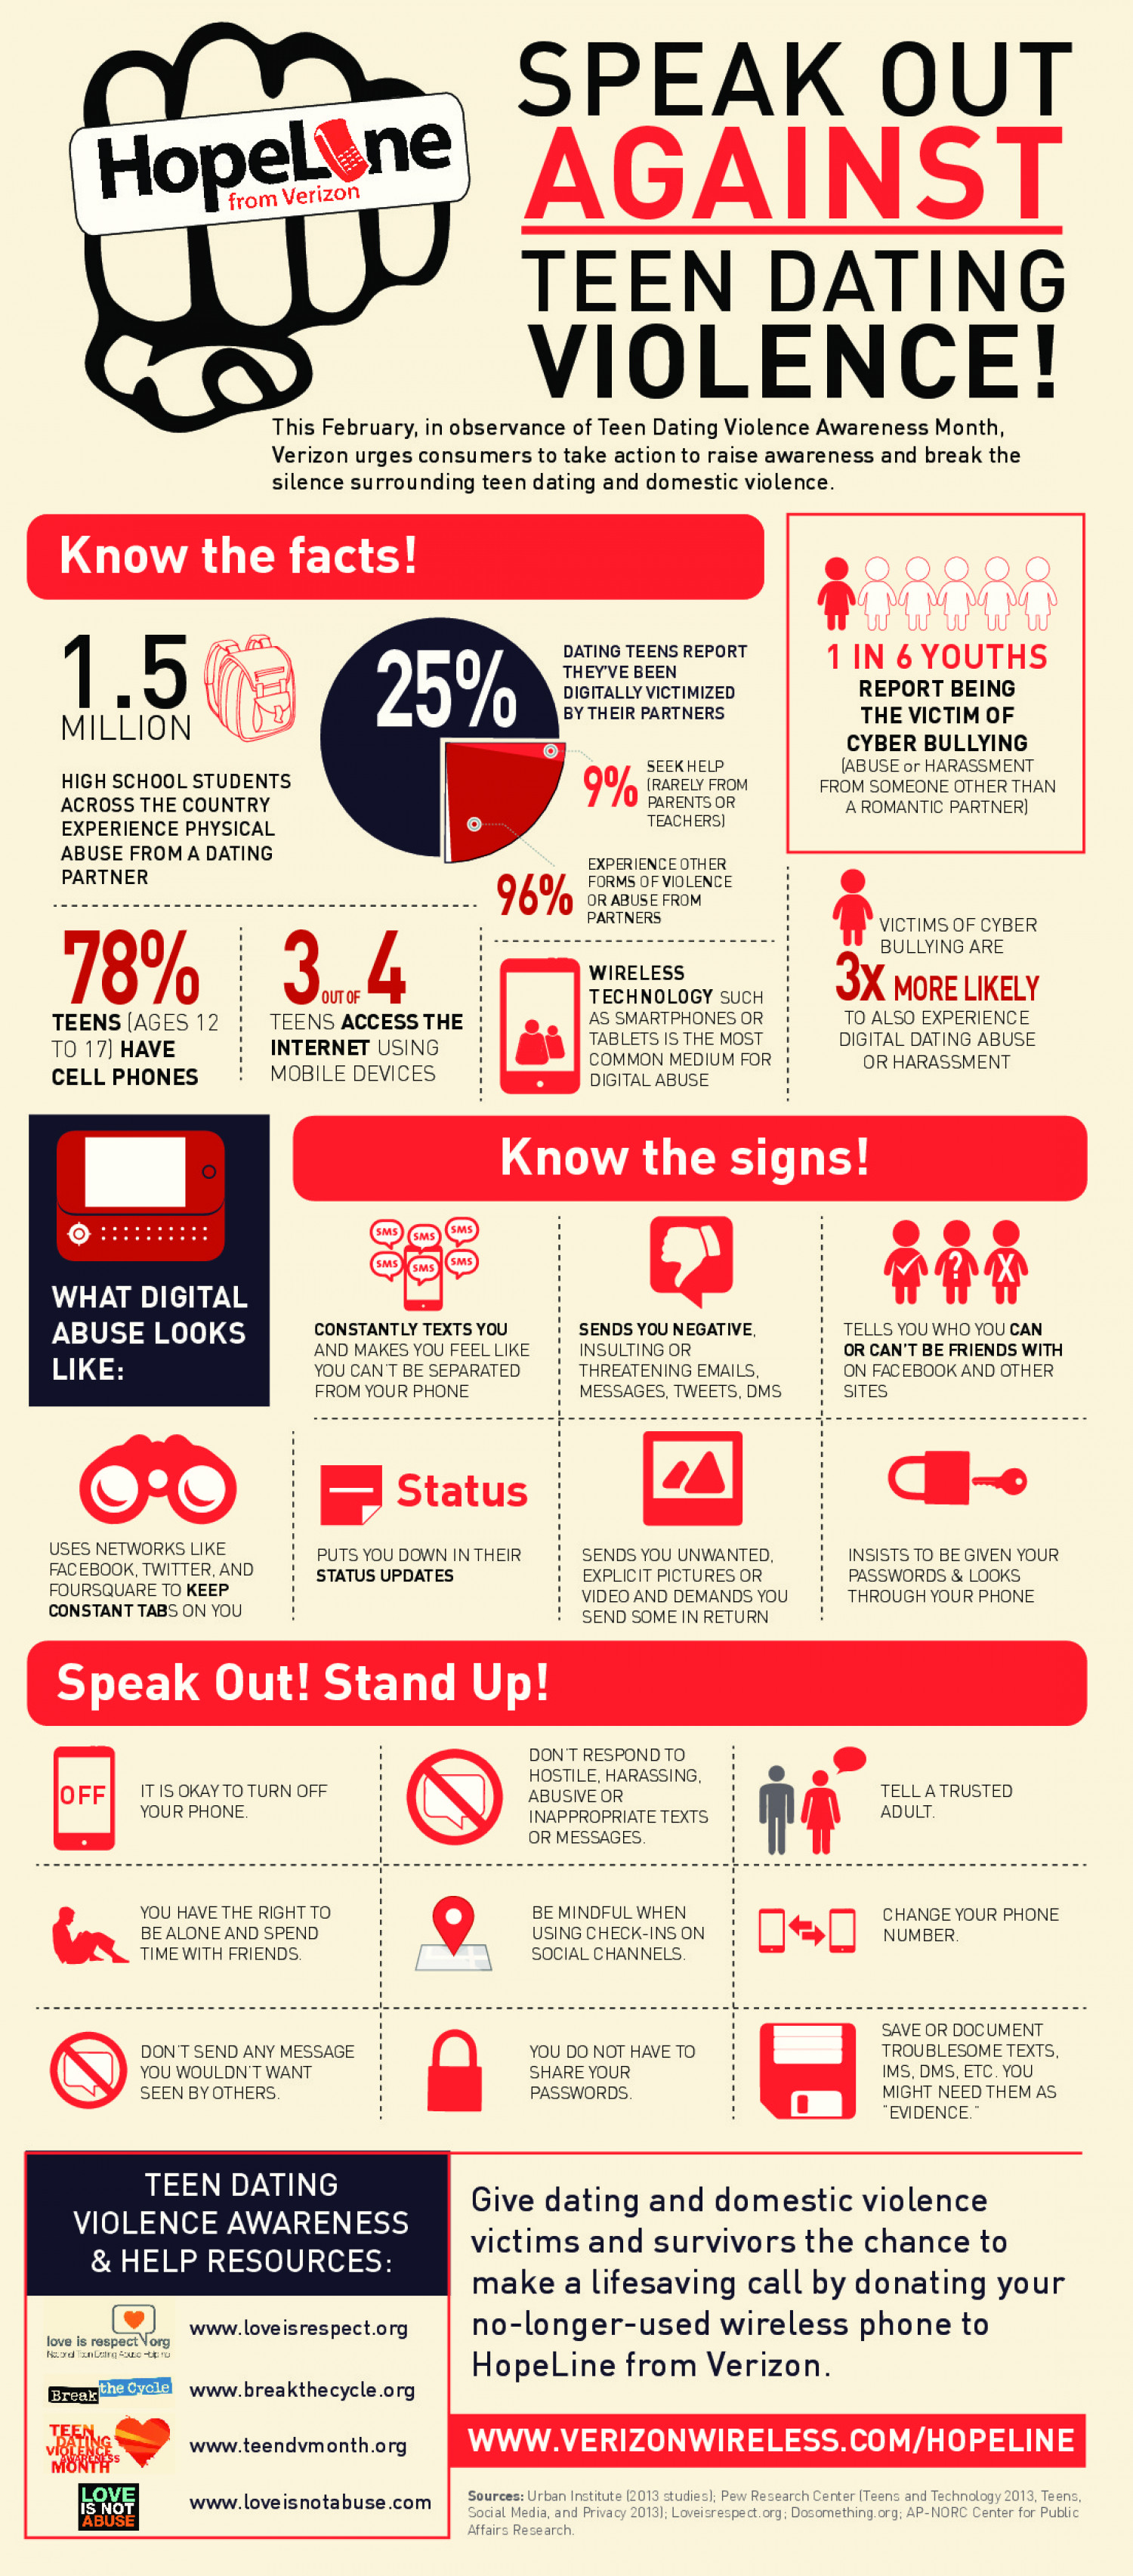 Speak Out Against Teen Dating Violence